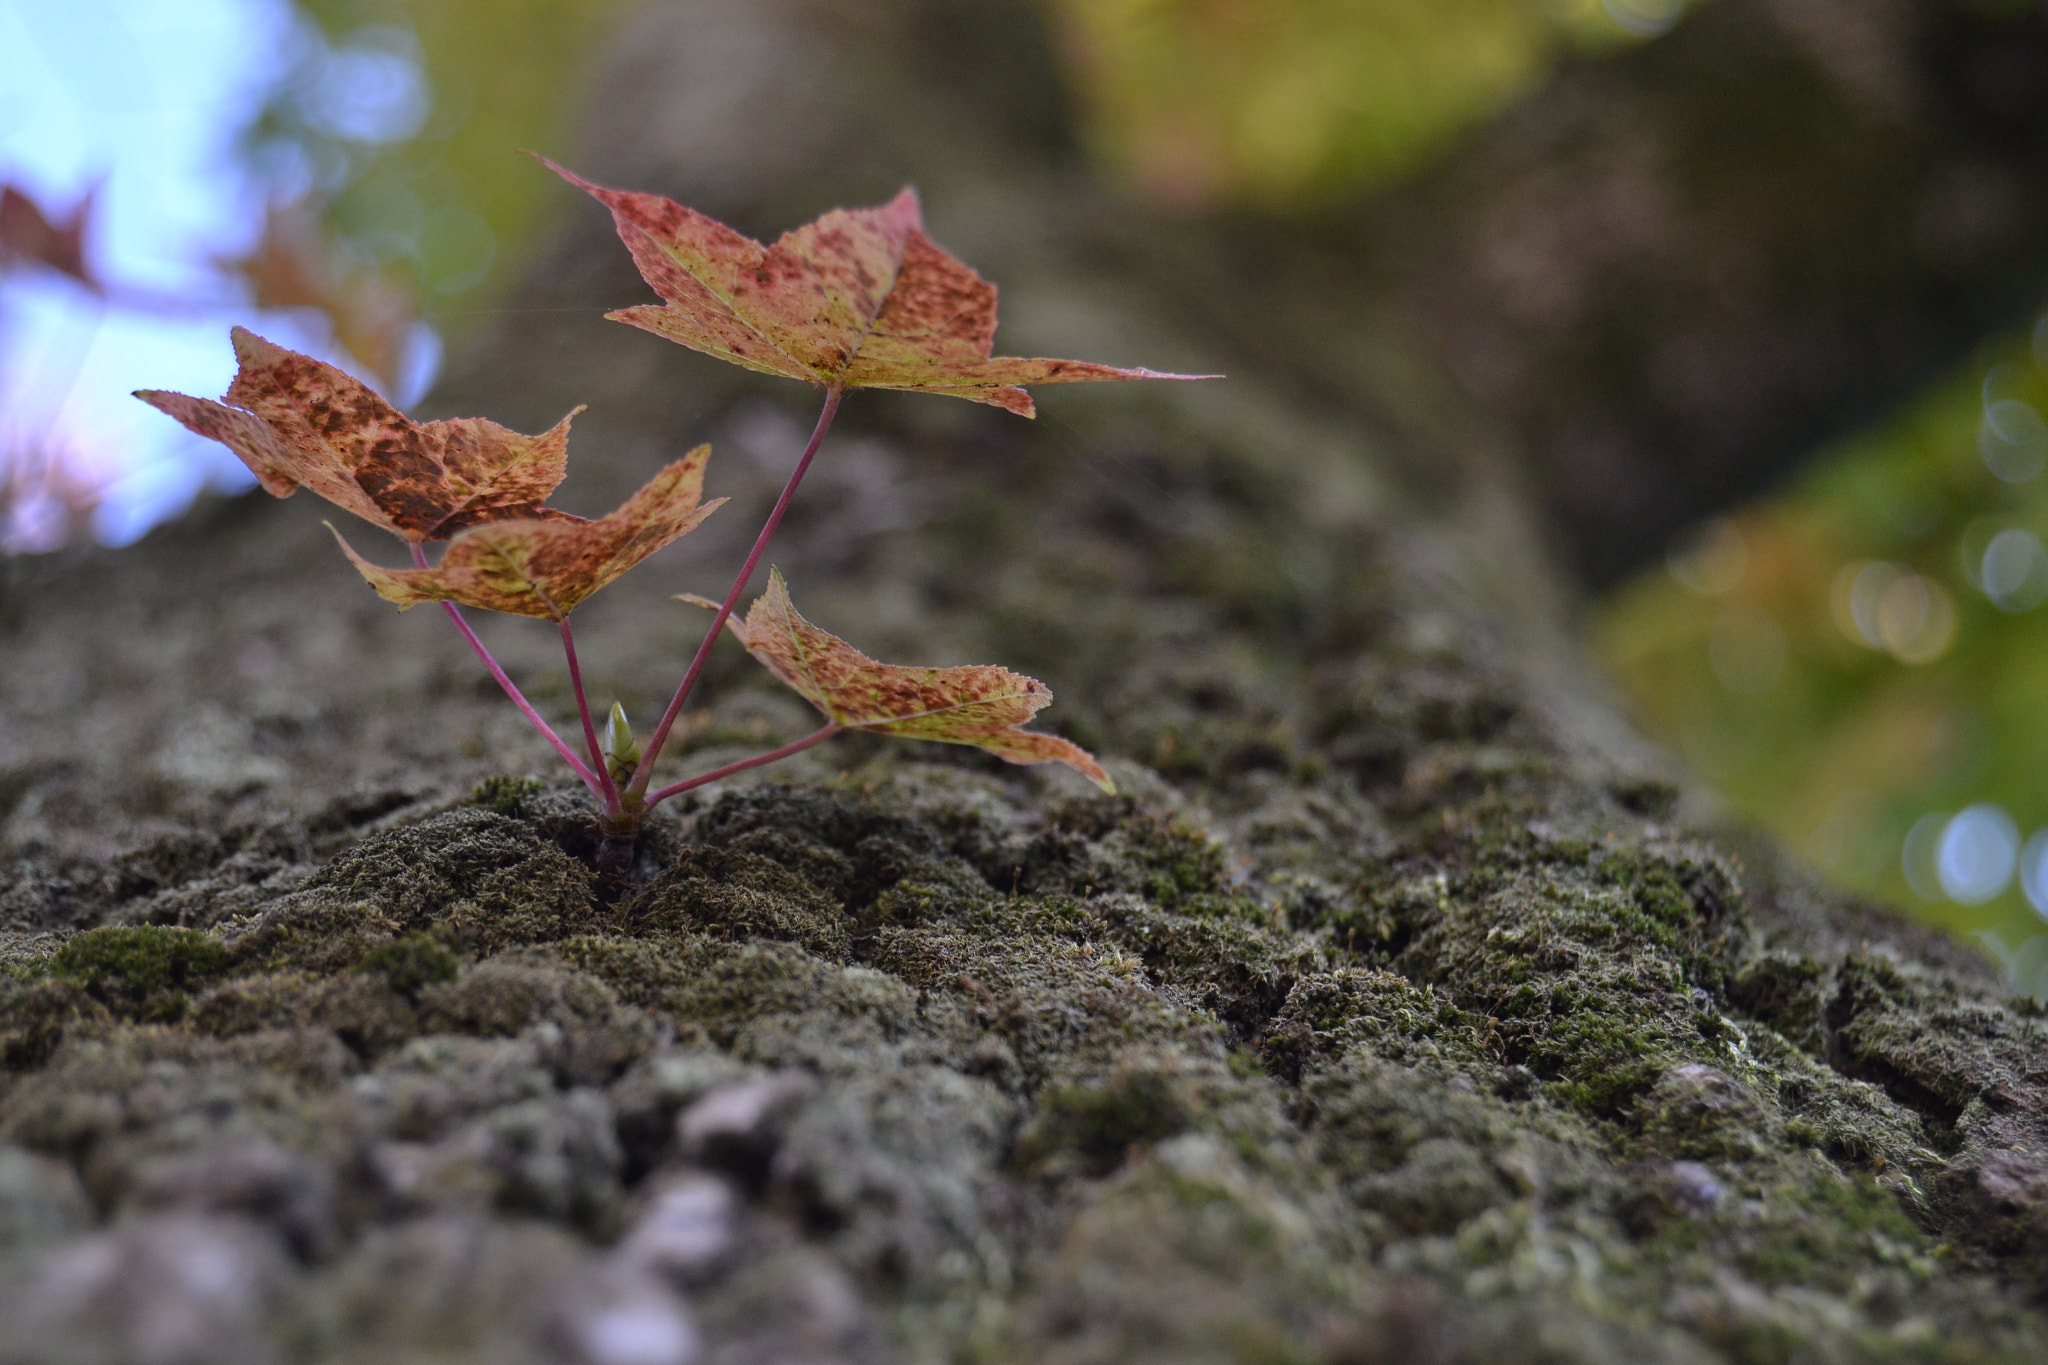 Photograph sprouting... by Hiroto Inoue on 500px